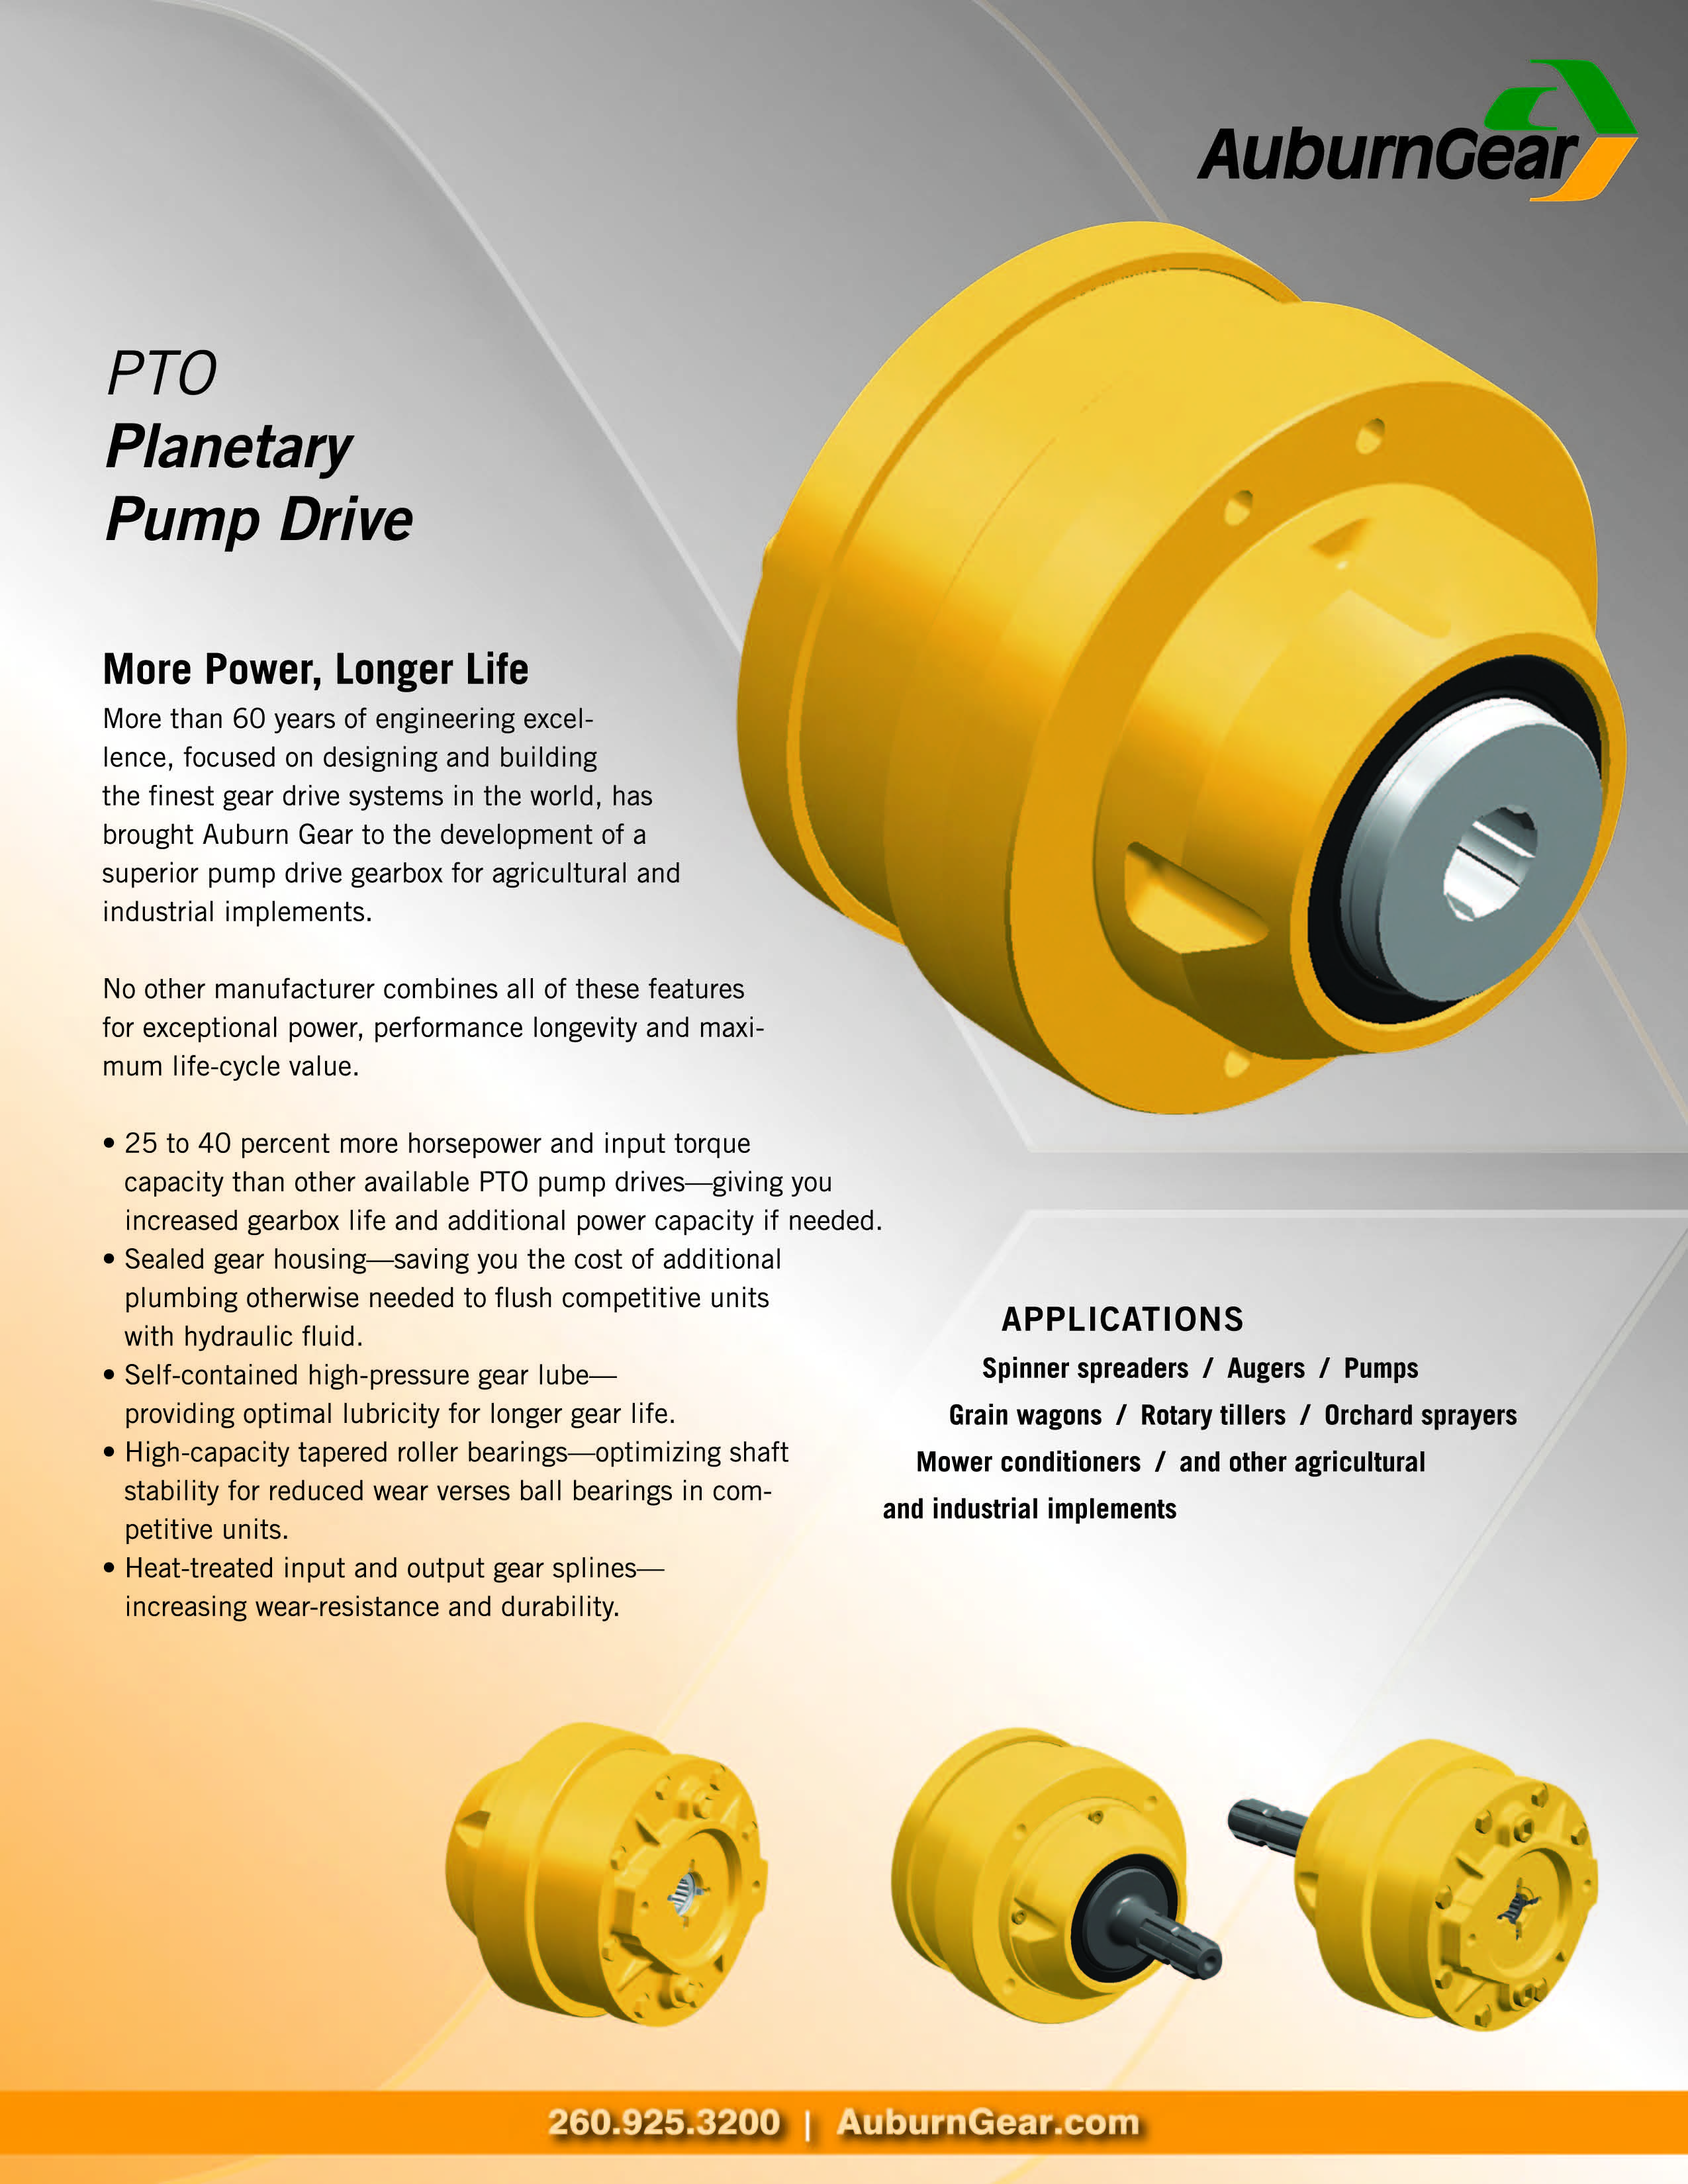 NEW PRODUCT: PTO Planetary Pump Drive